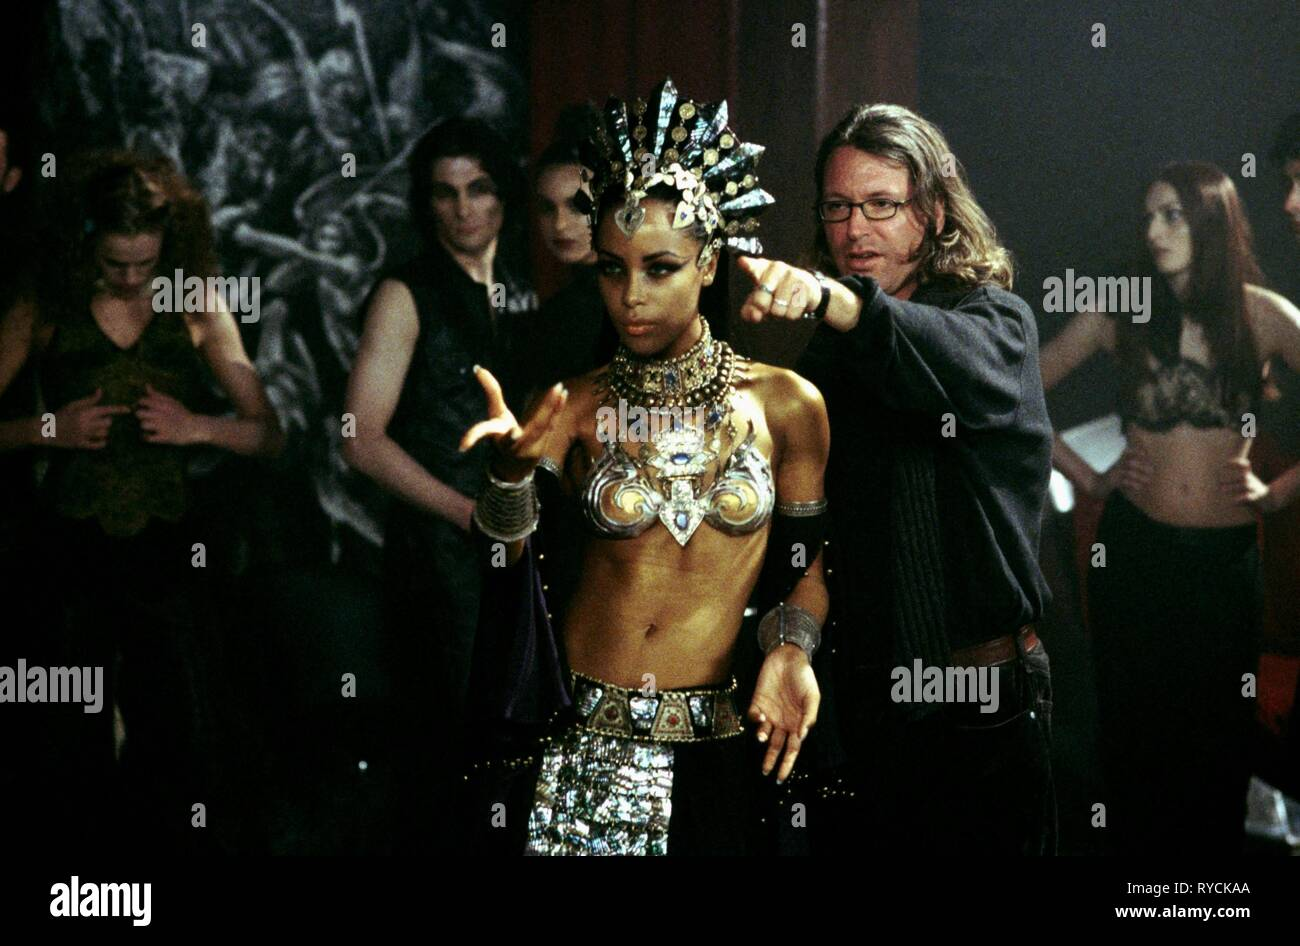 AALIYAH, MICHAEL RYMER, QUEEN OF THE DAMNED, 2002 - Stock Image